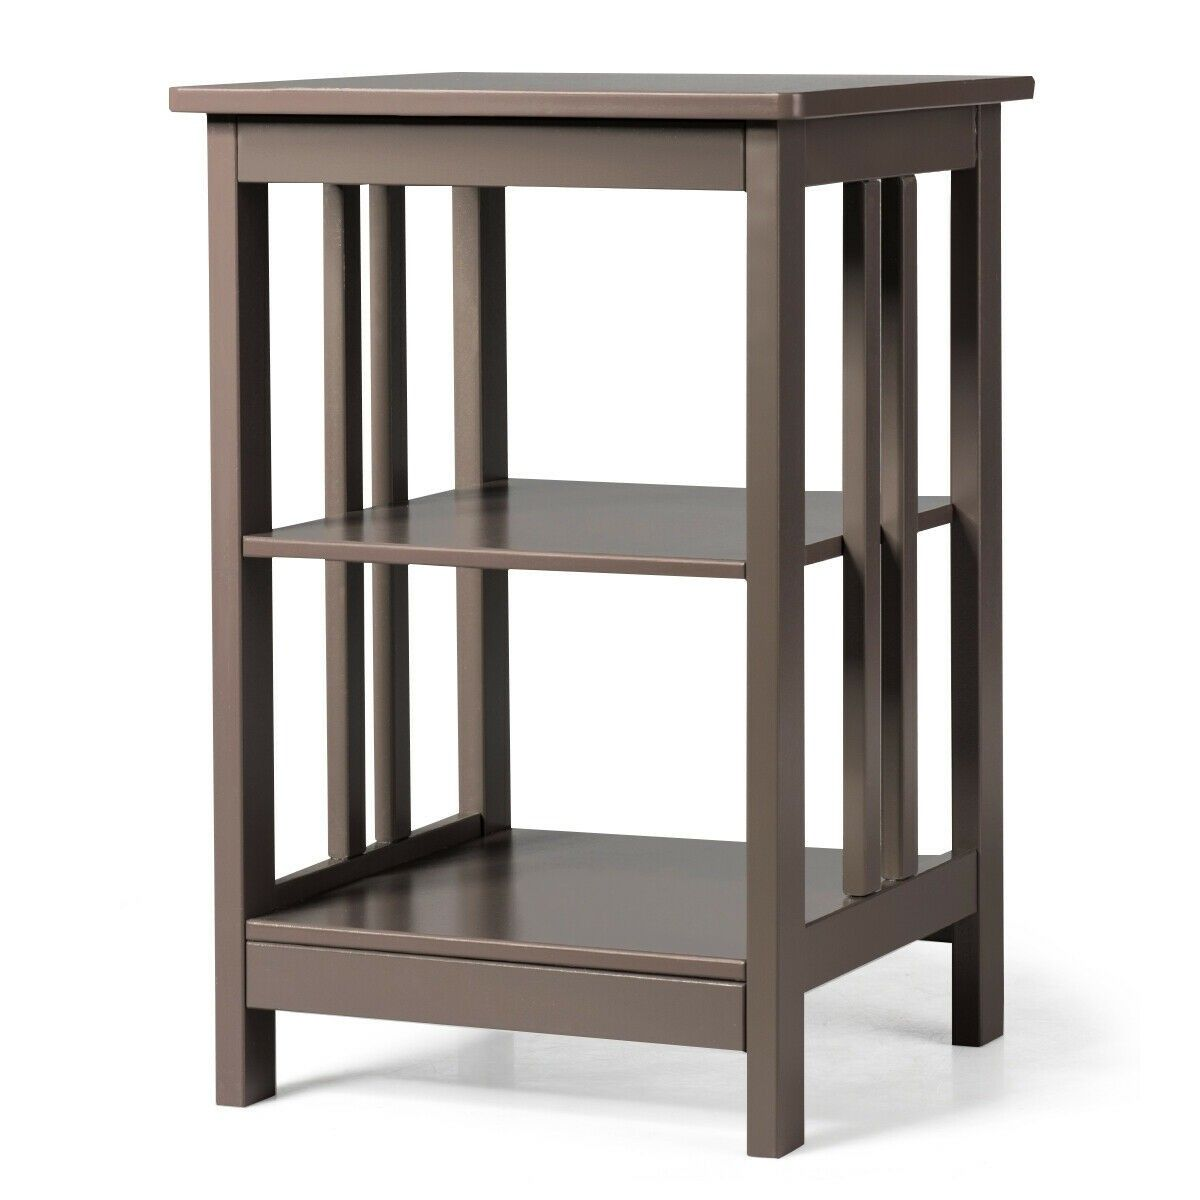 3 Tier Nightstand Side Table With Baffles And Corners Sofa End Tables Side Table Modern Side Table